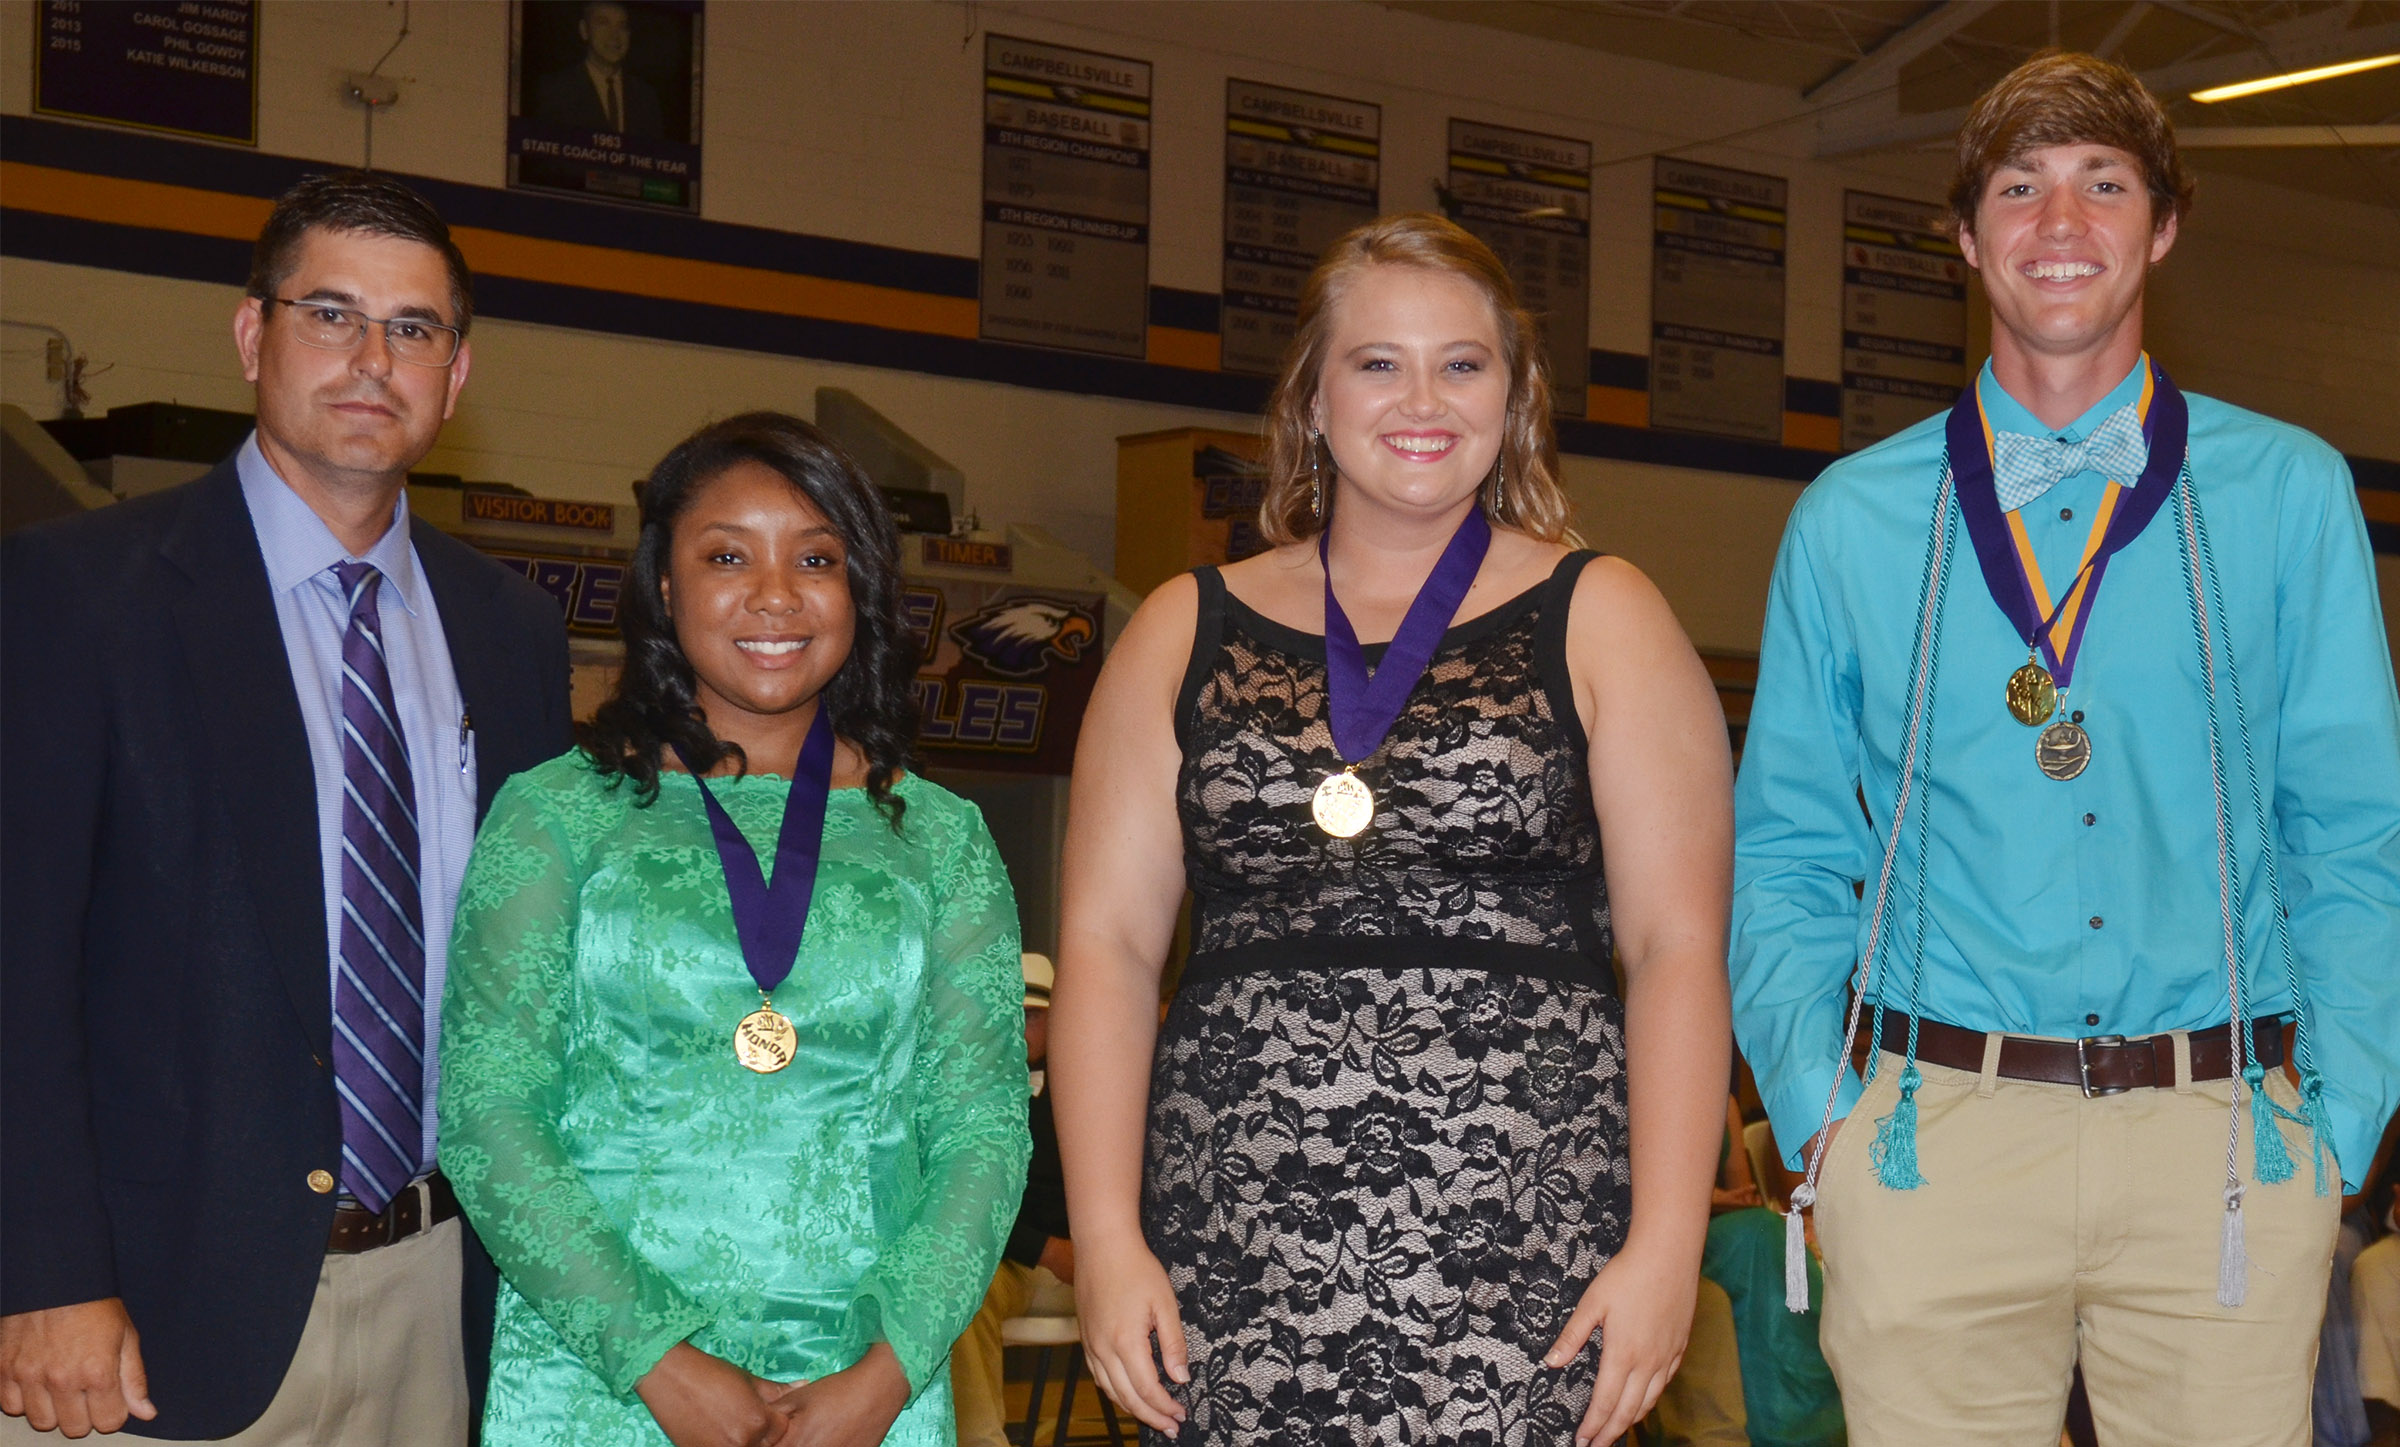 Receiving the Purple award for having GPAs between 3.5 and 3.7 are, from left, Principal Kirby Smith, Kayla Atkinson, Brenna Wethington and Zack Bottoms.